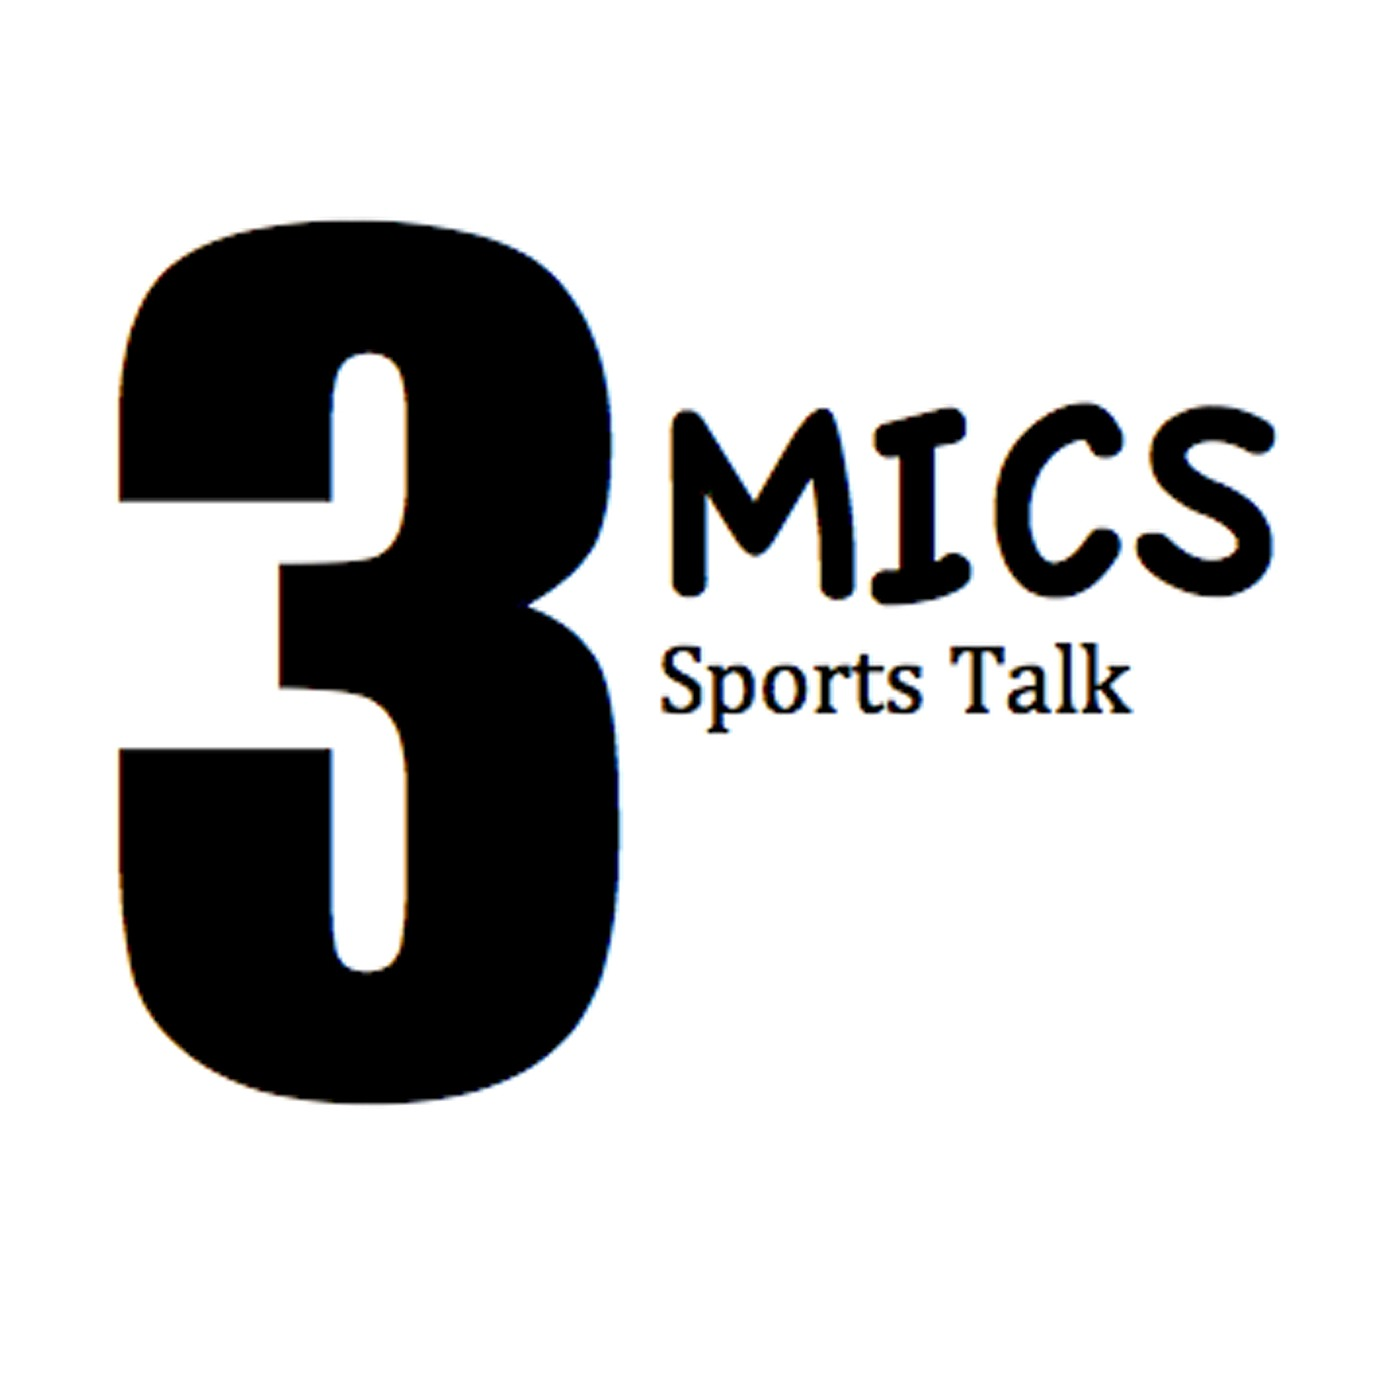 Three Mics Sports Podcast